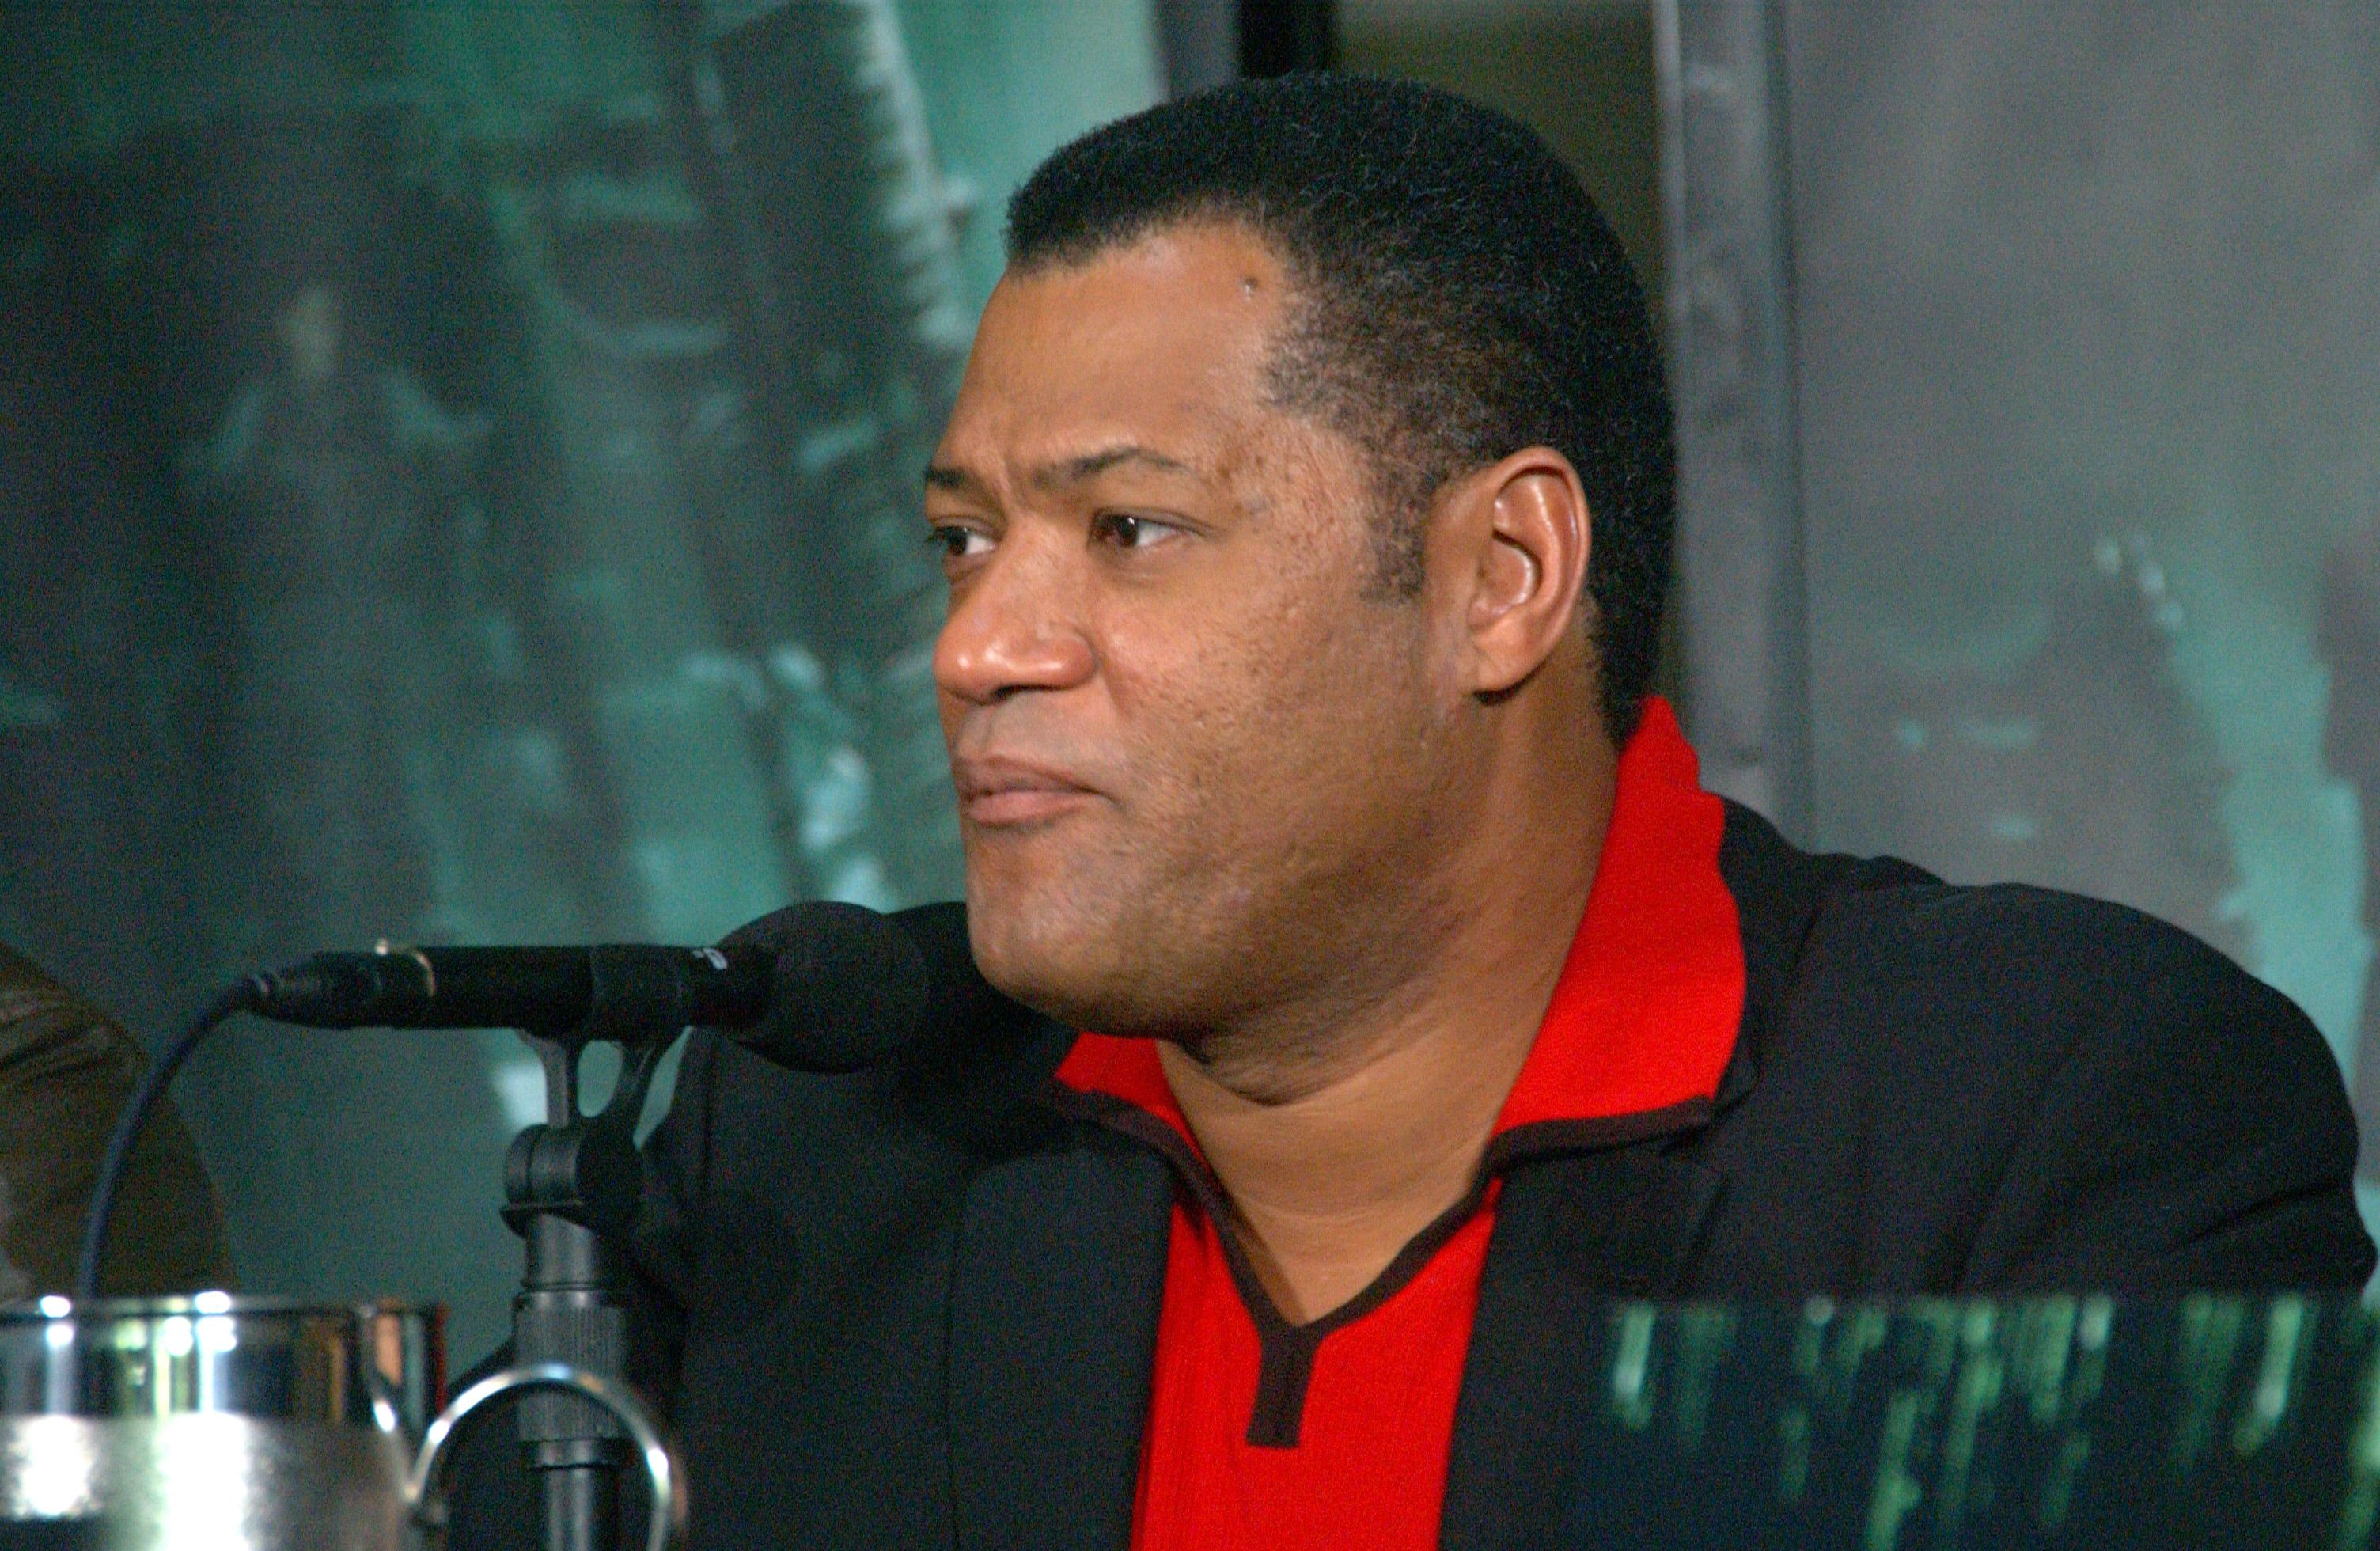 Laurence Fishburne in front of a black and green Matrix-style background